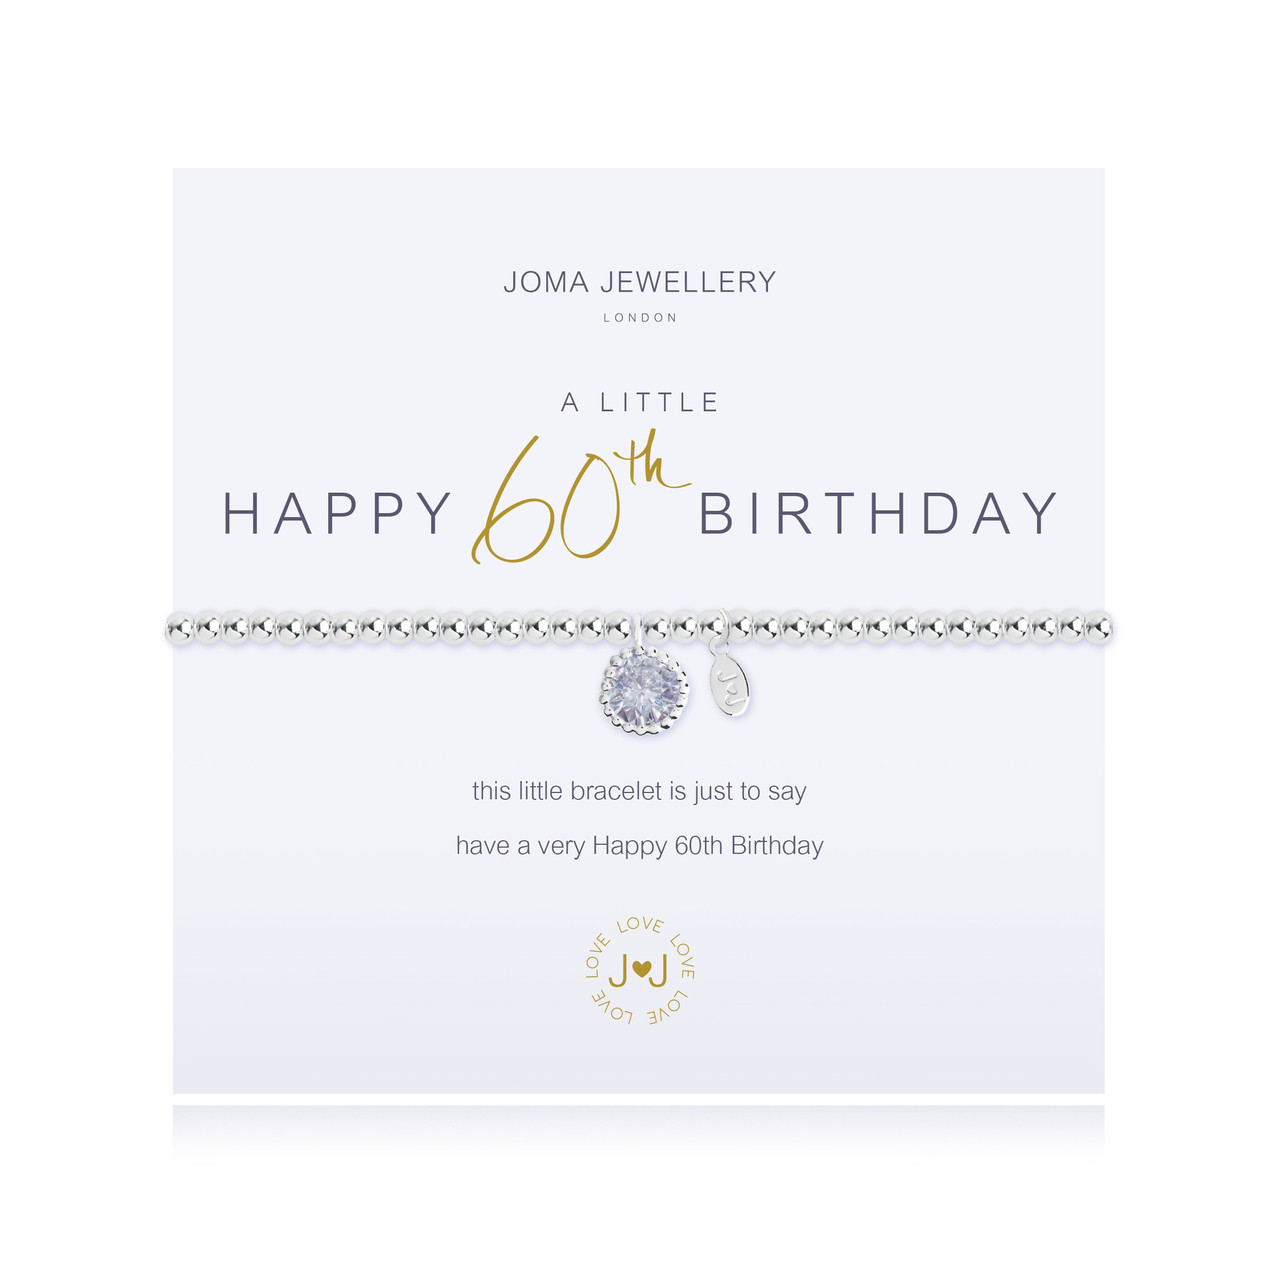 Joma Jewellery A Little Happy 60th Birthday Bracelet Gift Bag Tag